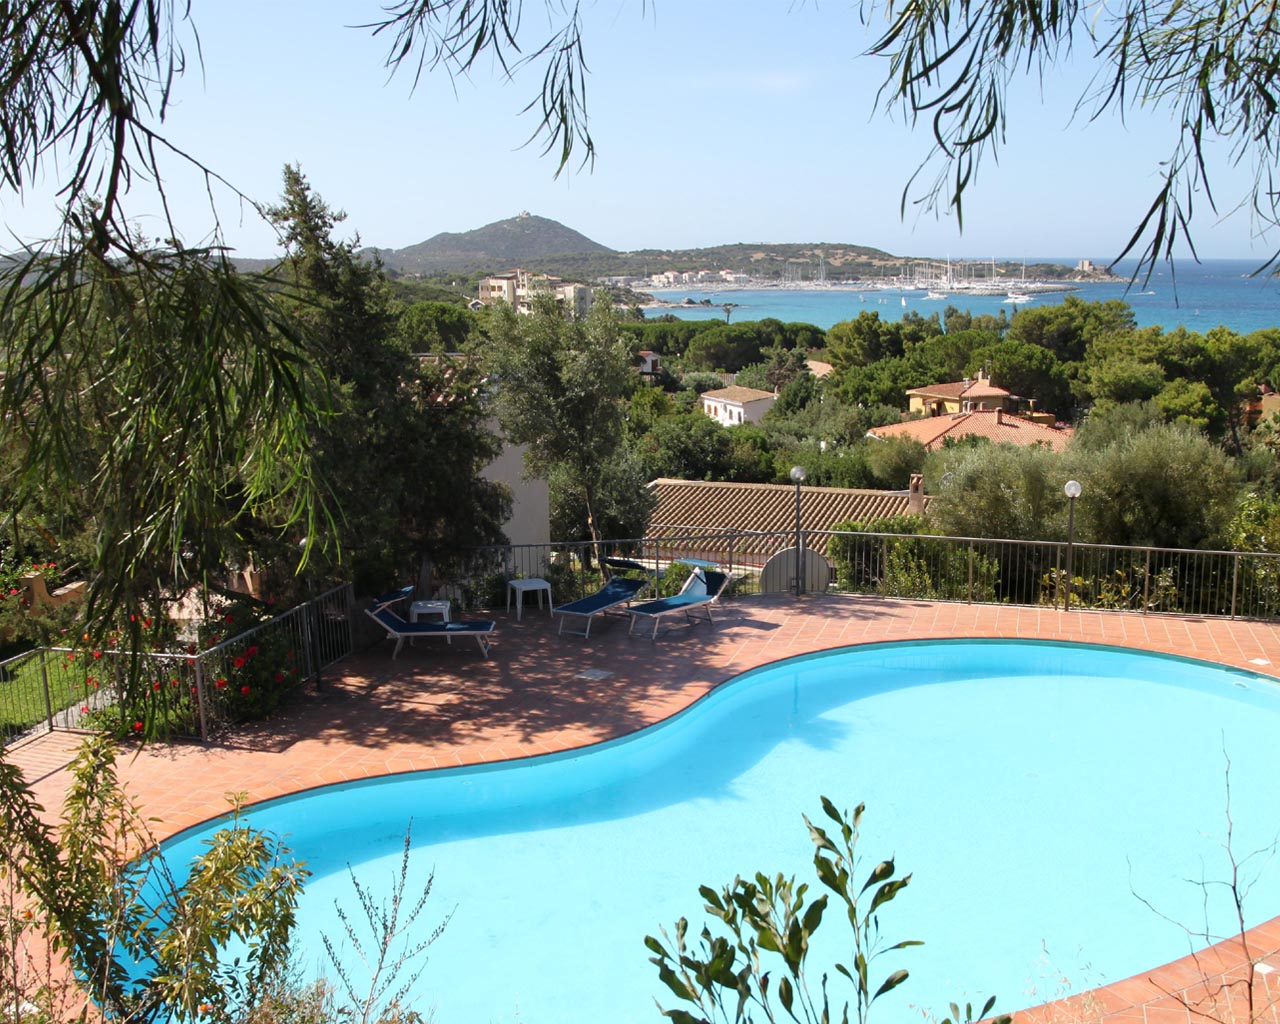 Ferienhaus Mit Pool Villasimius Holidays Apartments Of Residence La Chimera In Villasimius South